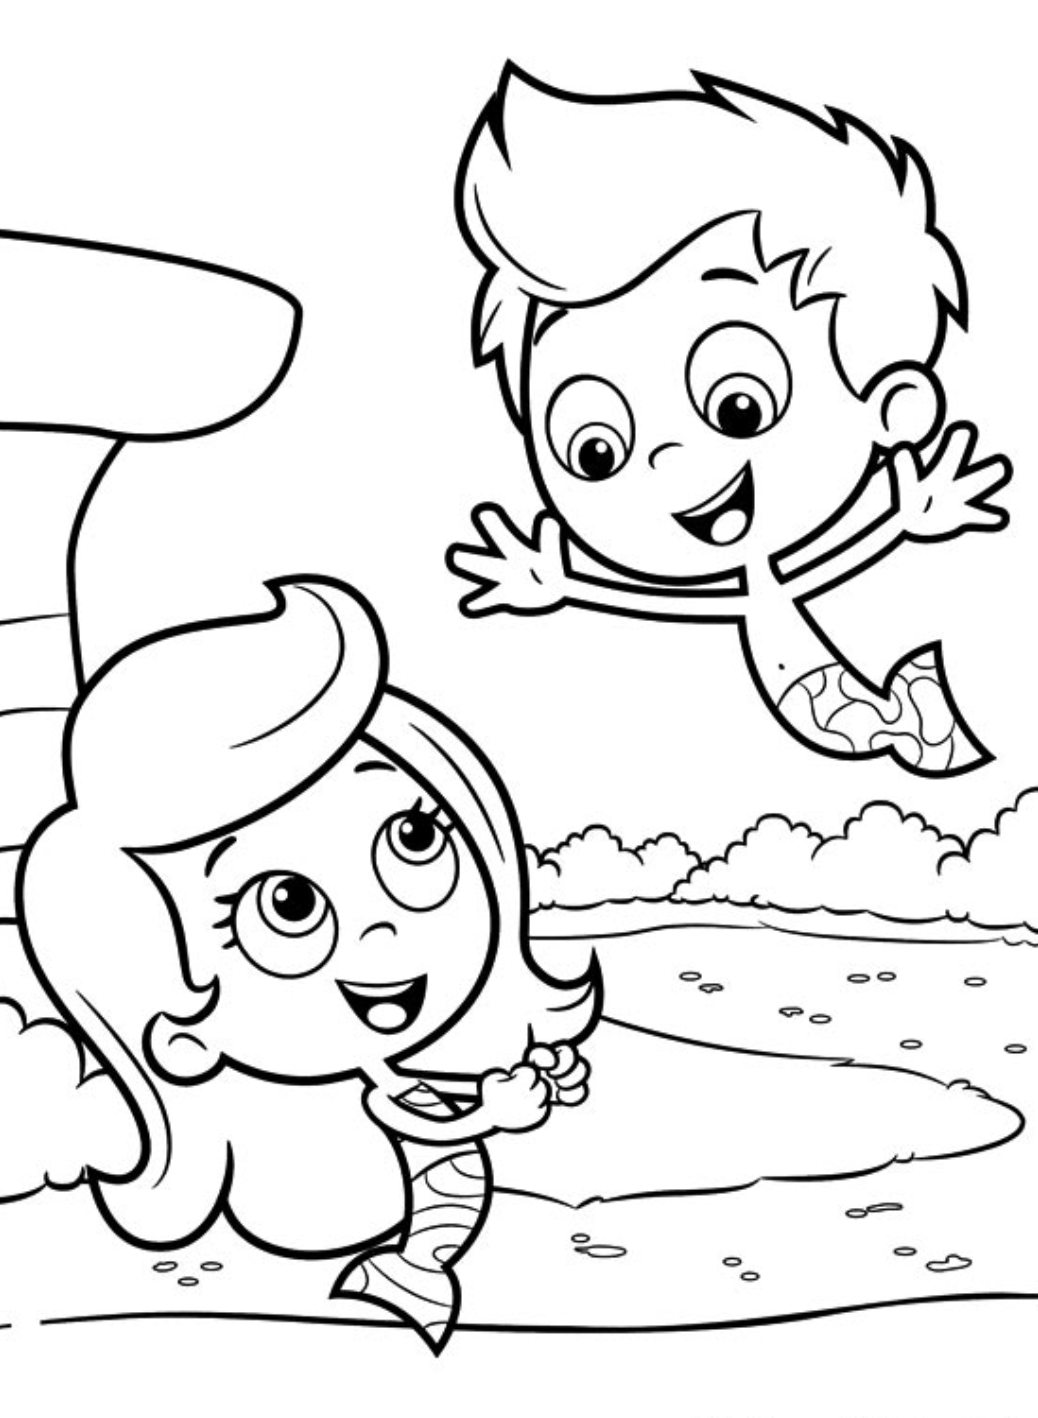 Bubble Guppies Coloring Page - Bubble Guppies Coloring Pages ... | 1418x1038